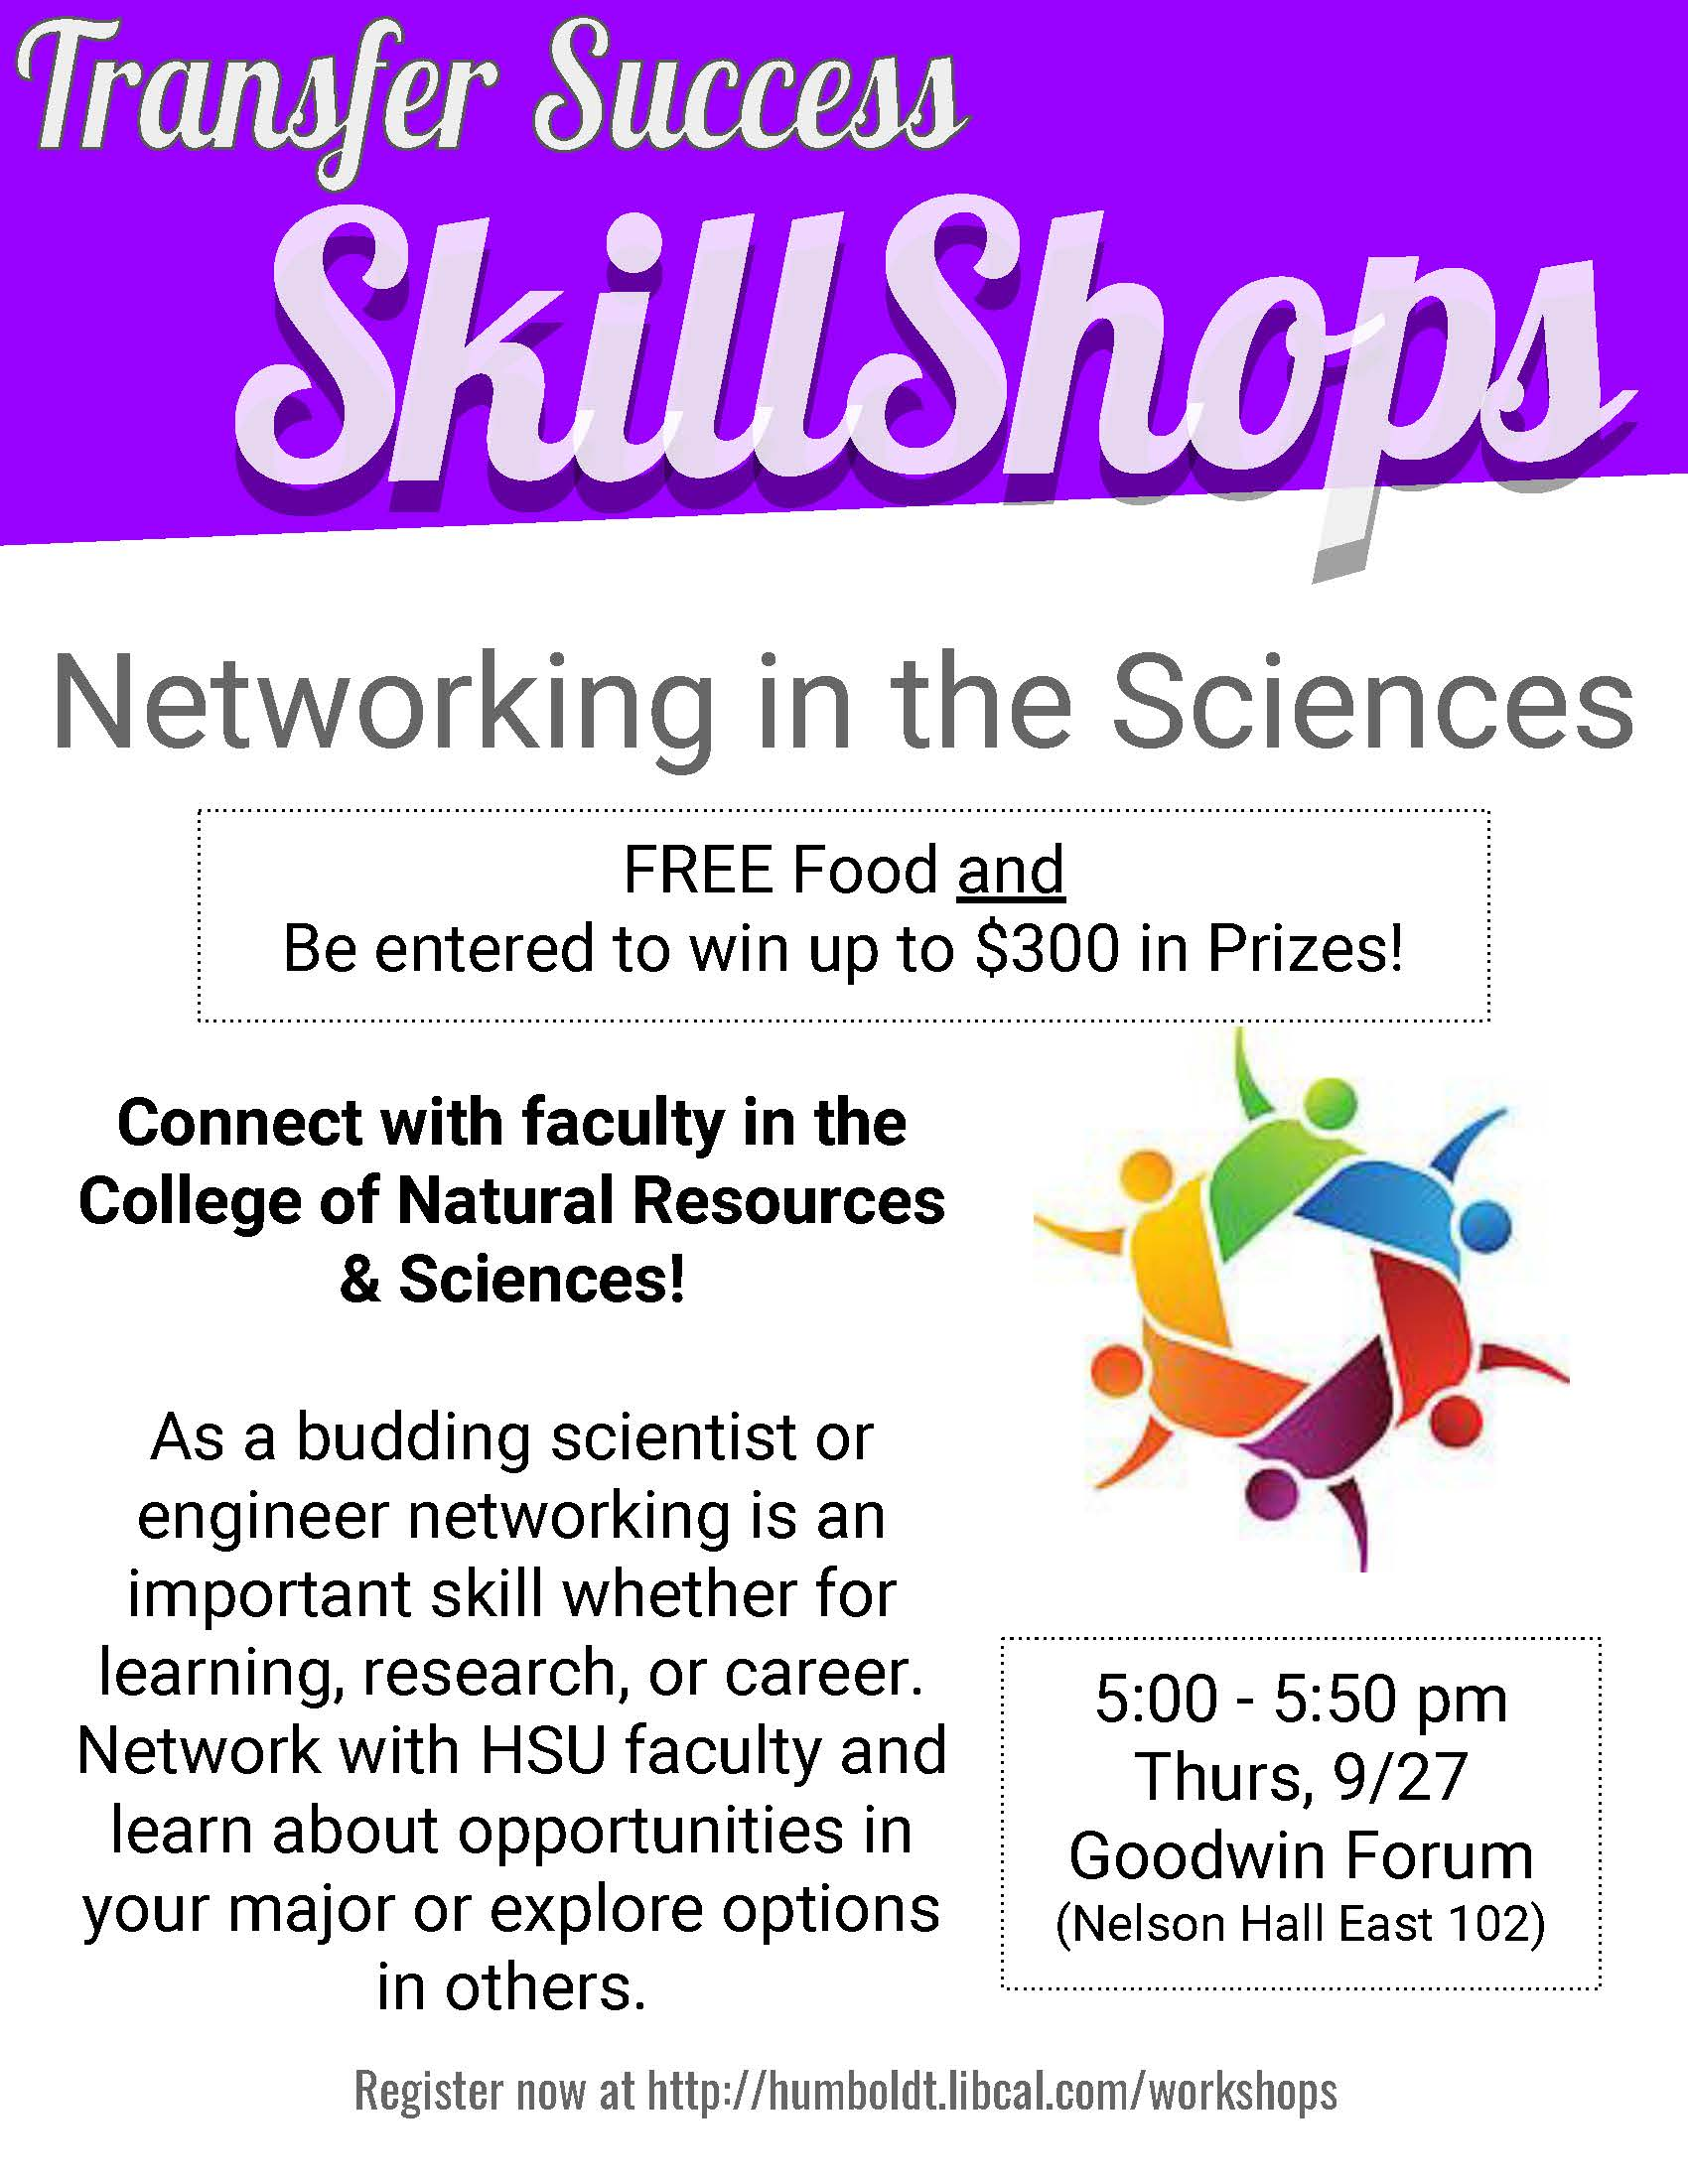 Transfer Success: Networking in the Sciences